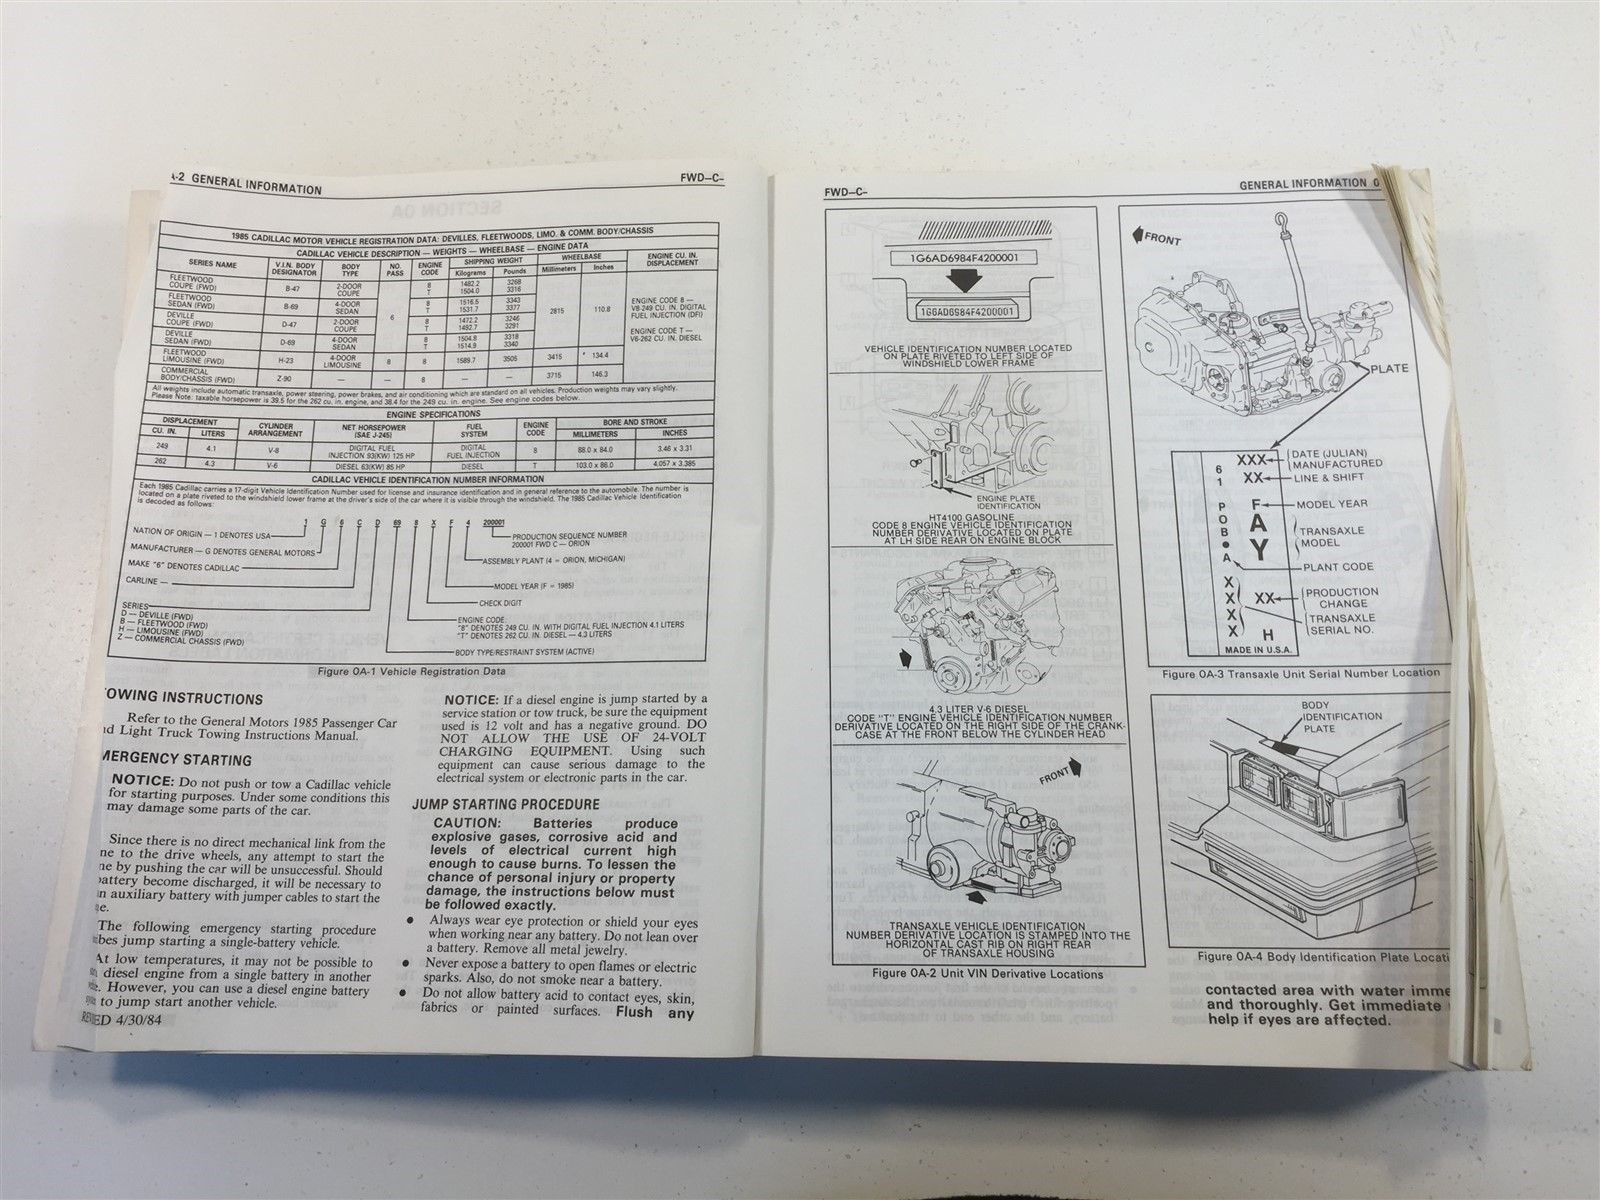 1985 Cadillac FWD DeVille and Fleetwood Service Information Final Edition